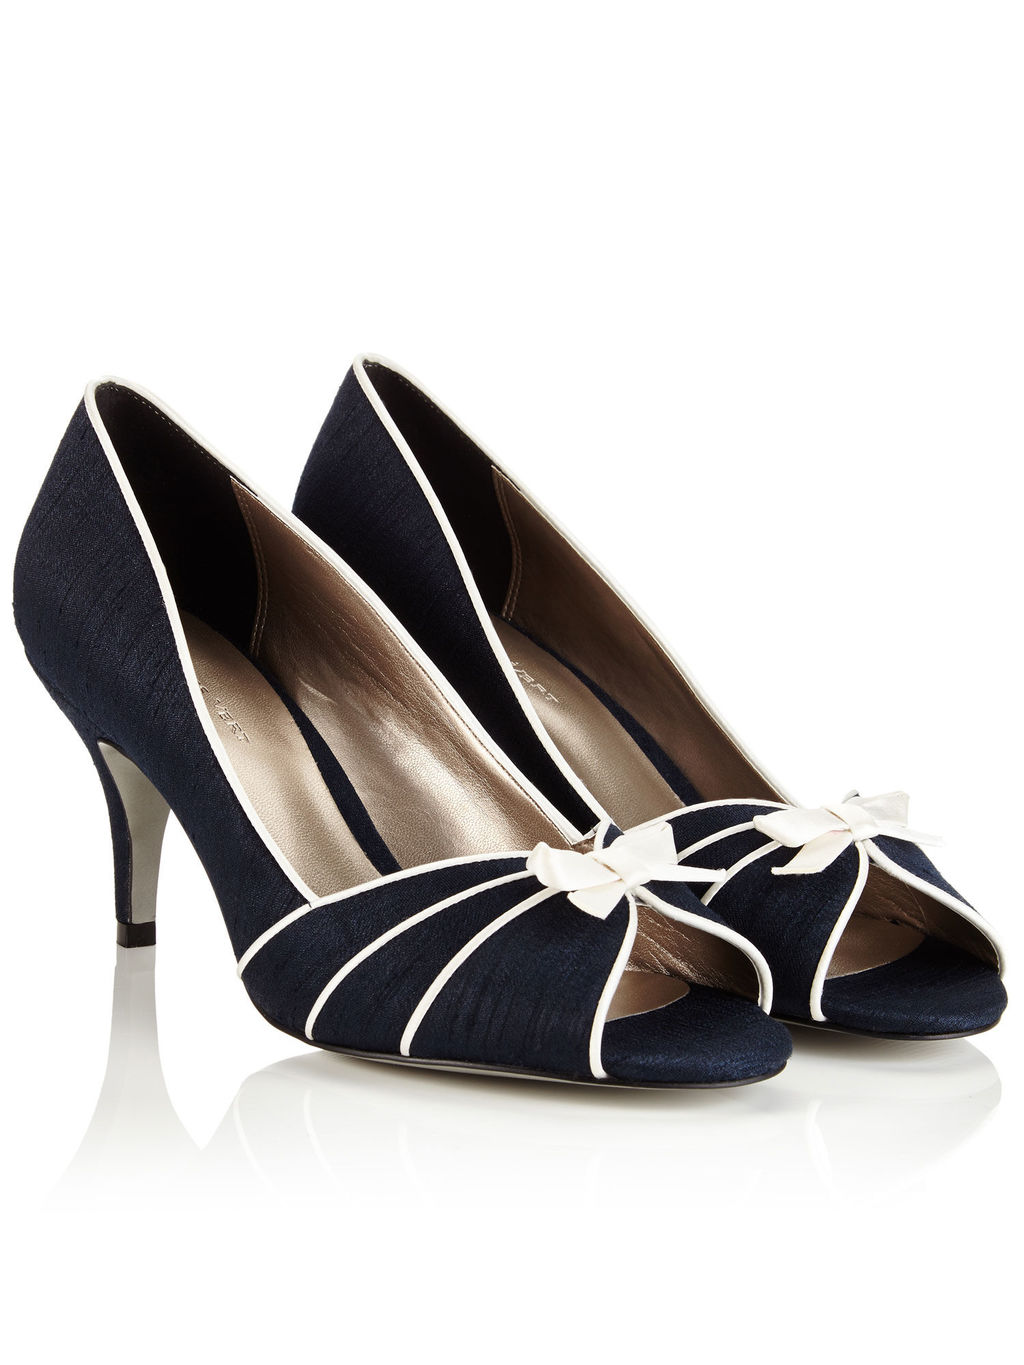 Piping Detail Peeptoe Shoe - secondary colour: ivory/cream; predominant colour: royal blue; occasions: casual; material: fabric; heel height: high; heel: stiletto; toe: open toe/peeptoe; style: courts; finish: plain; pattern: plain; embellishment: bow; season: a/w 2015